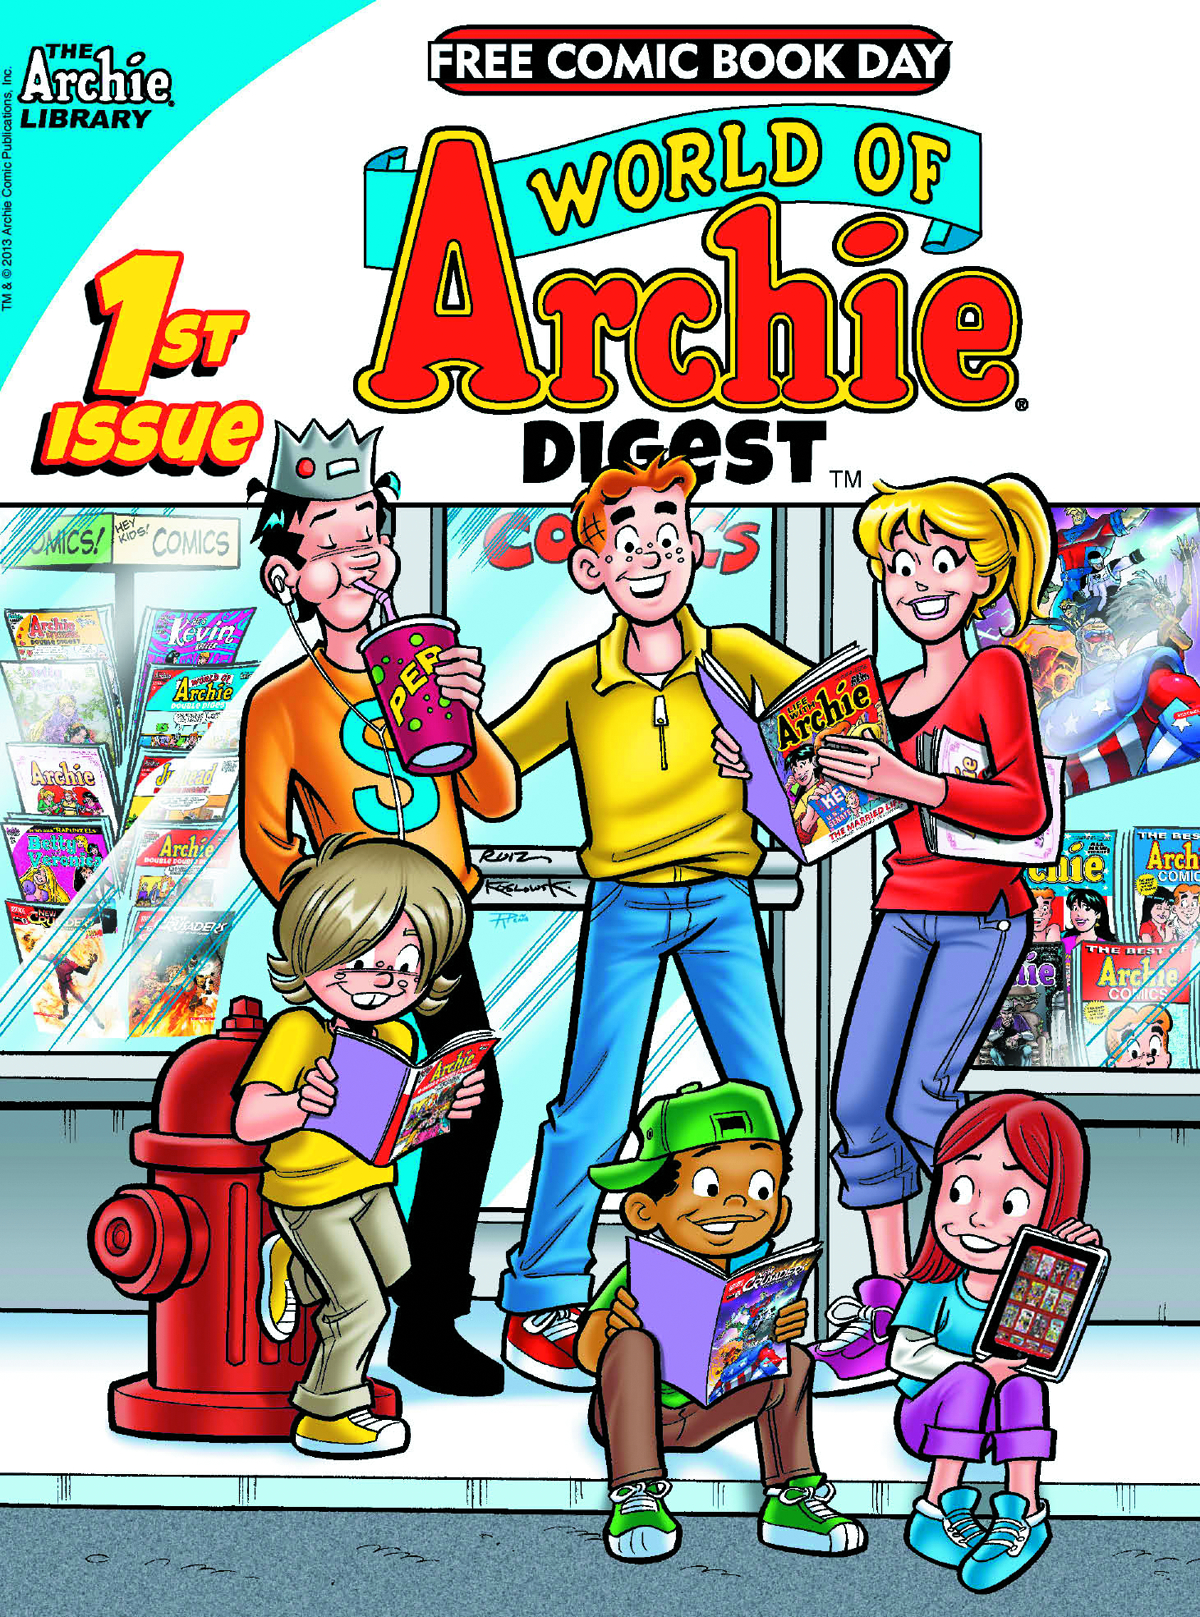 FCBD 2013 WORLD OF ARCHIE DIGEST